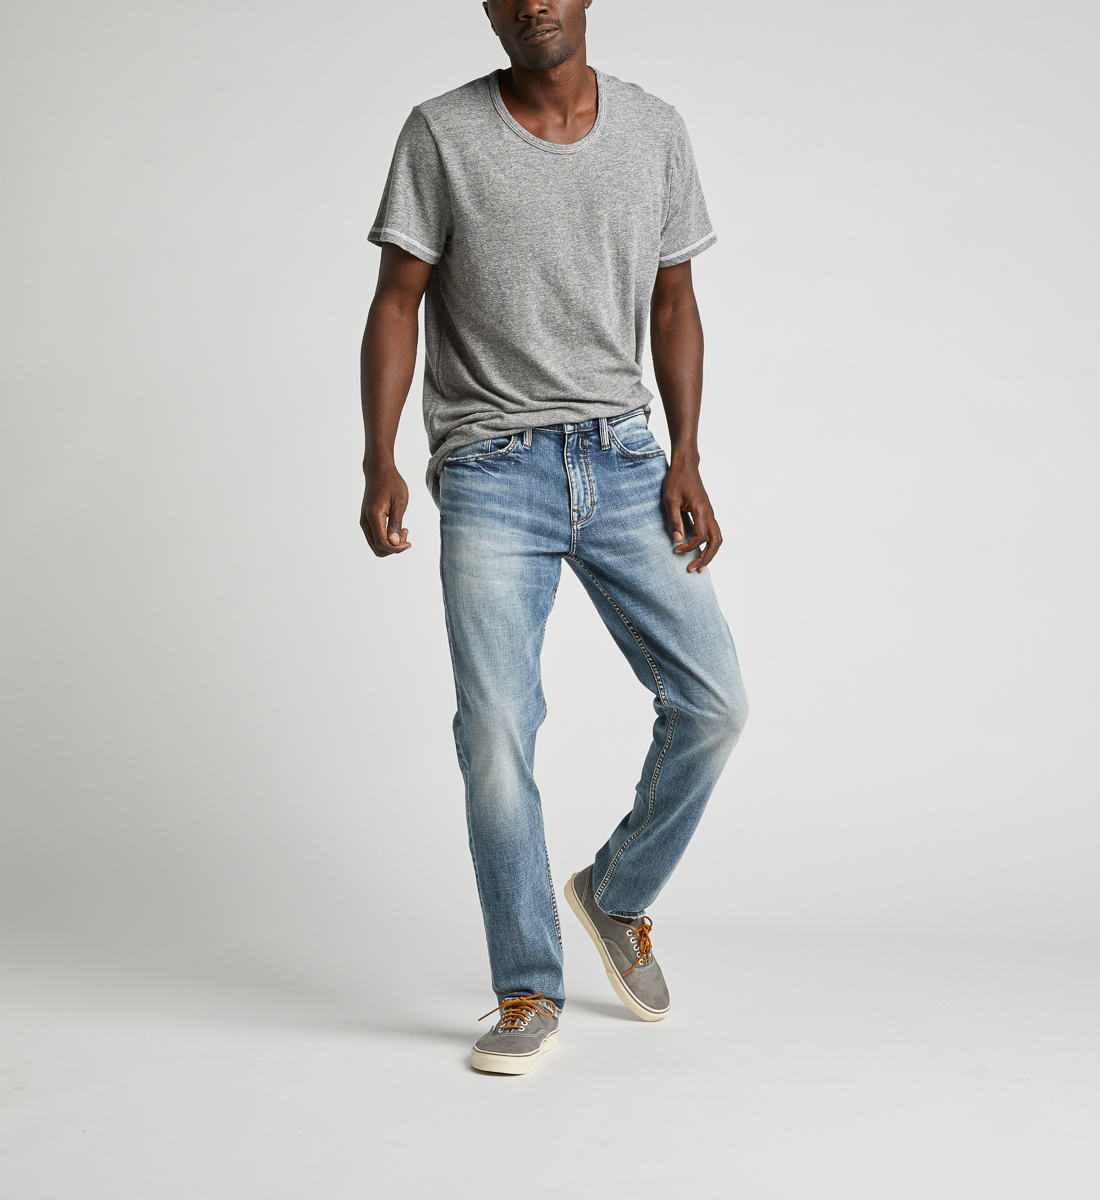 Machray Classic Straight Jeans Alt Image 1